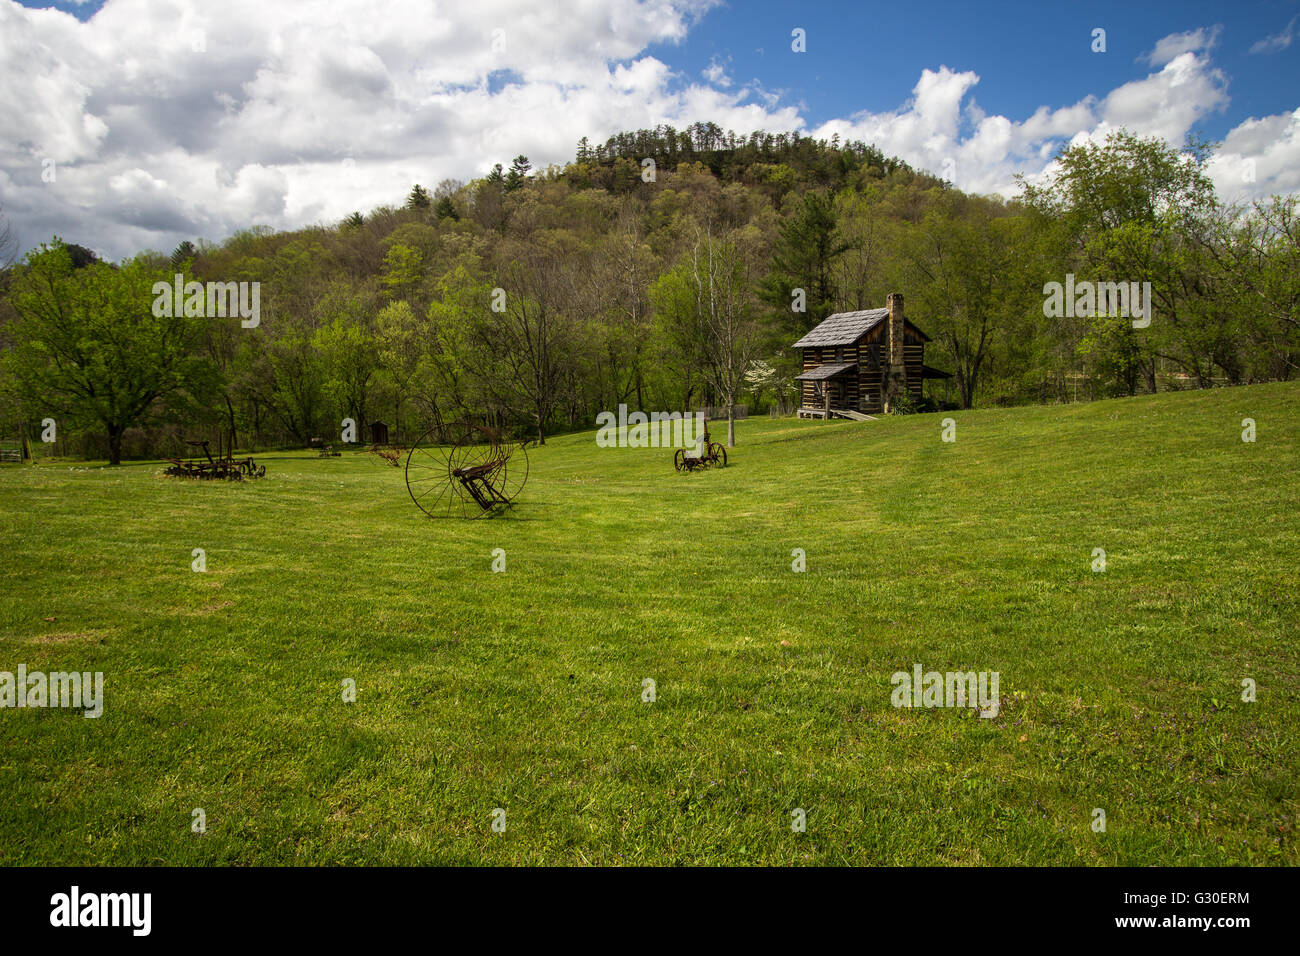 Historic Pioneer Farm In Kentucky. Farm and cabin at the Gladie Visitor Center in the Daniel Boone National Forest. - Stock Image